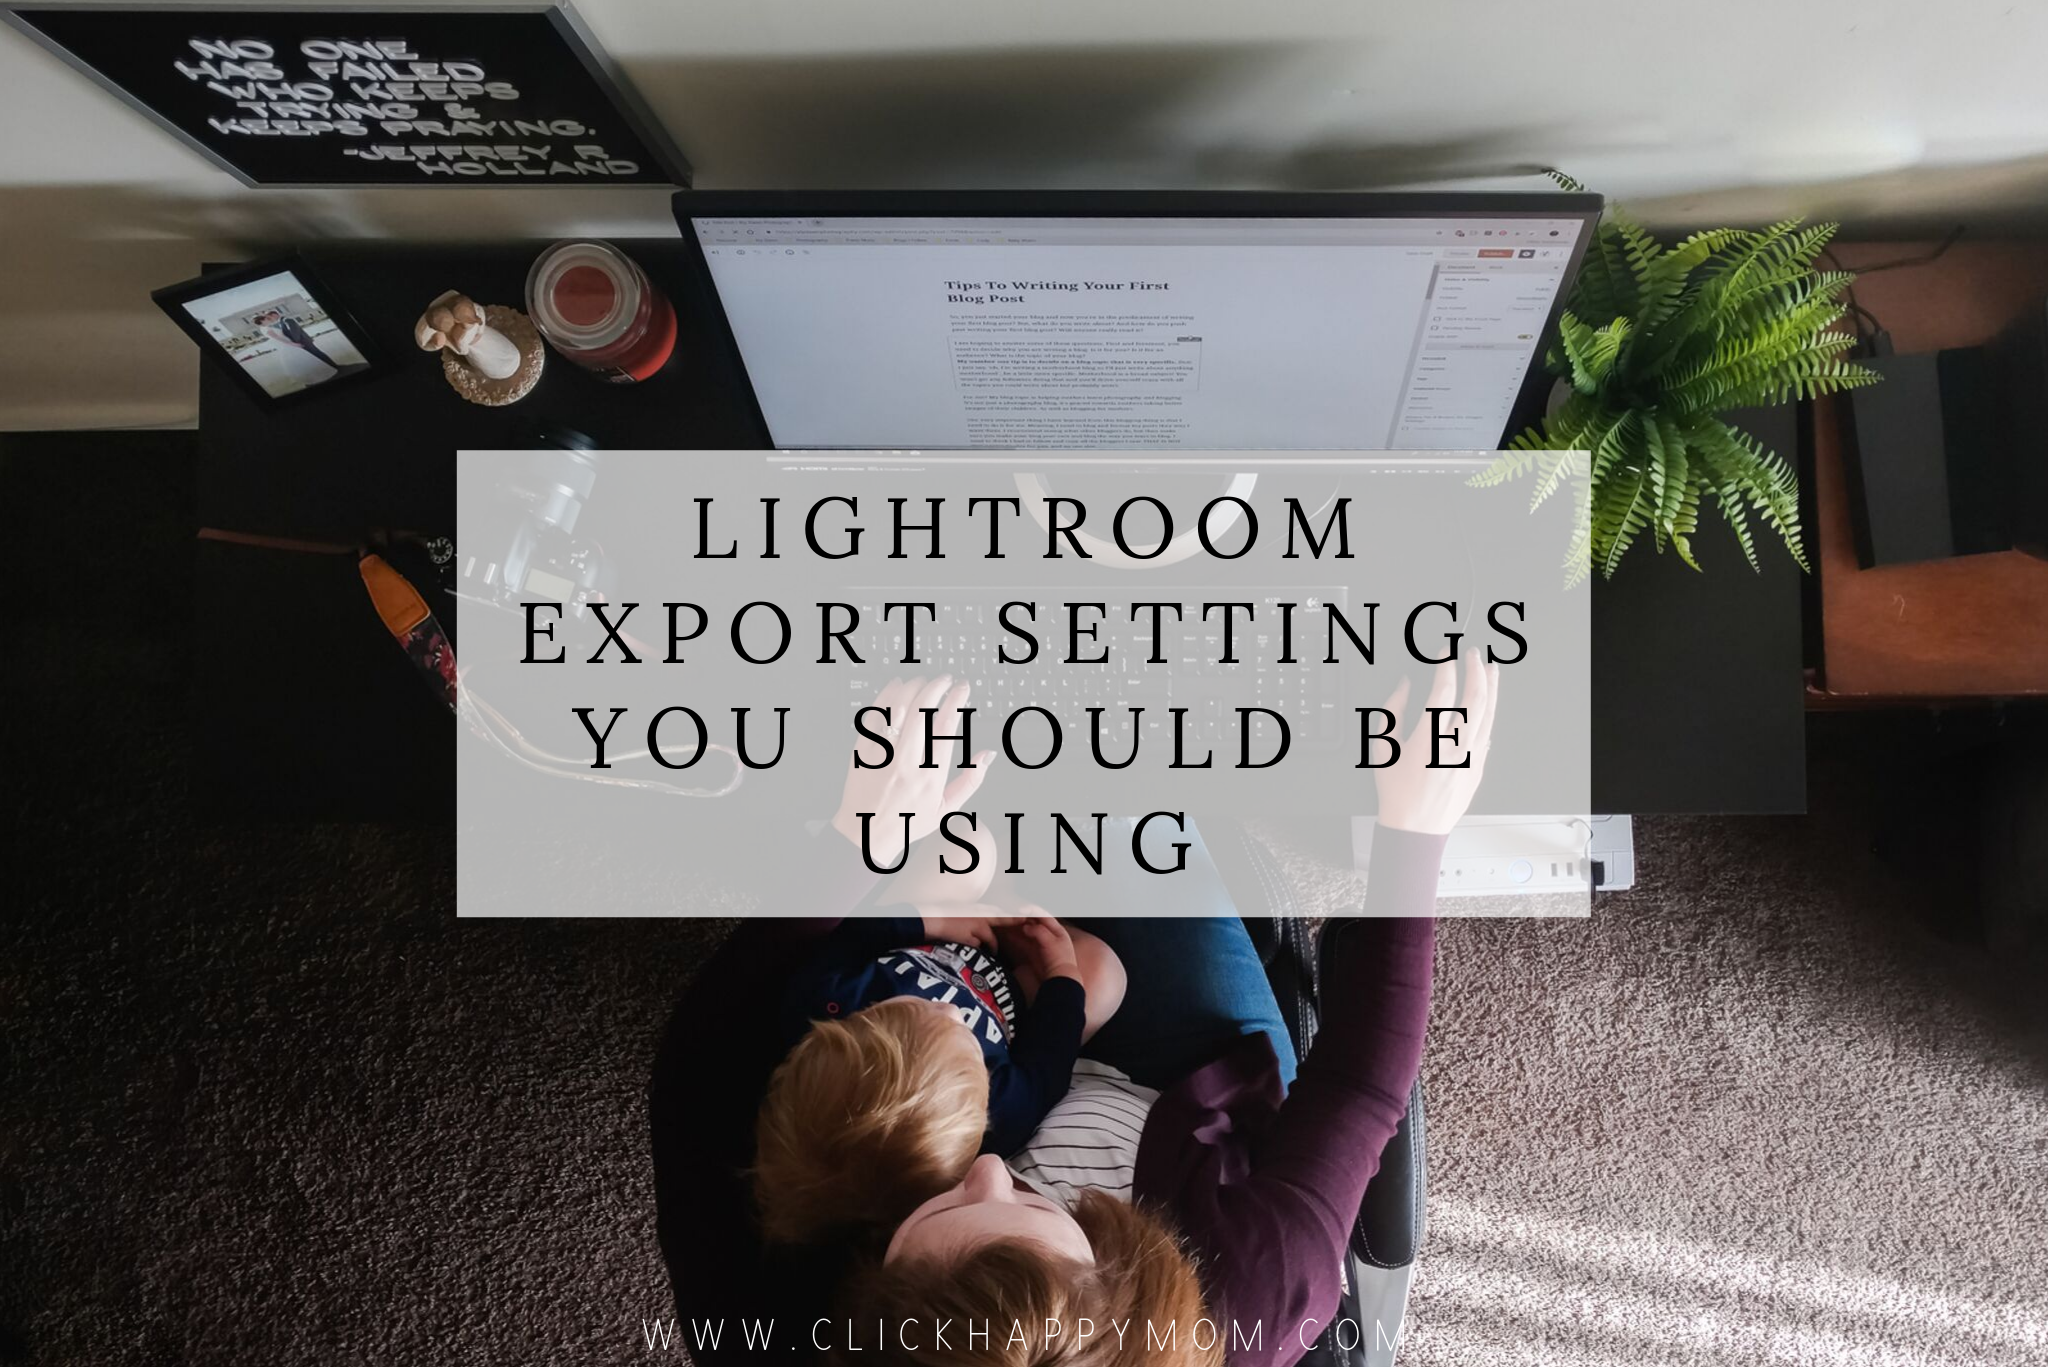 Lightroom Export Settings You Should be Using